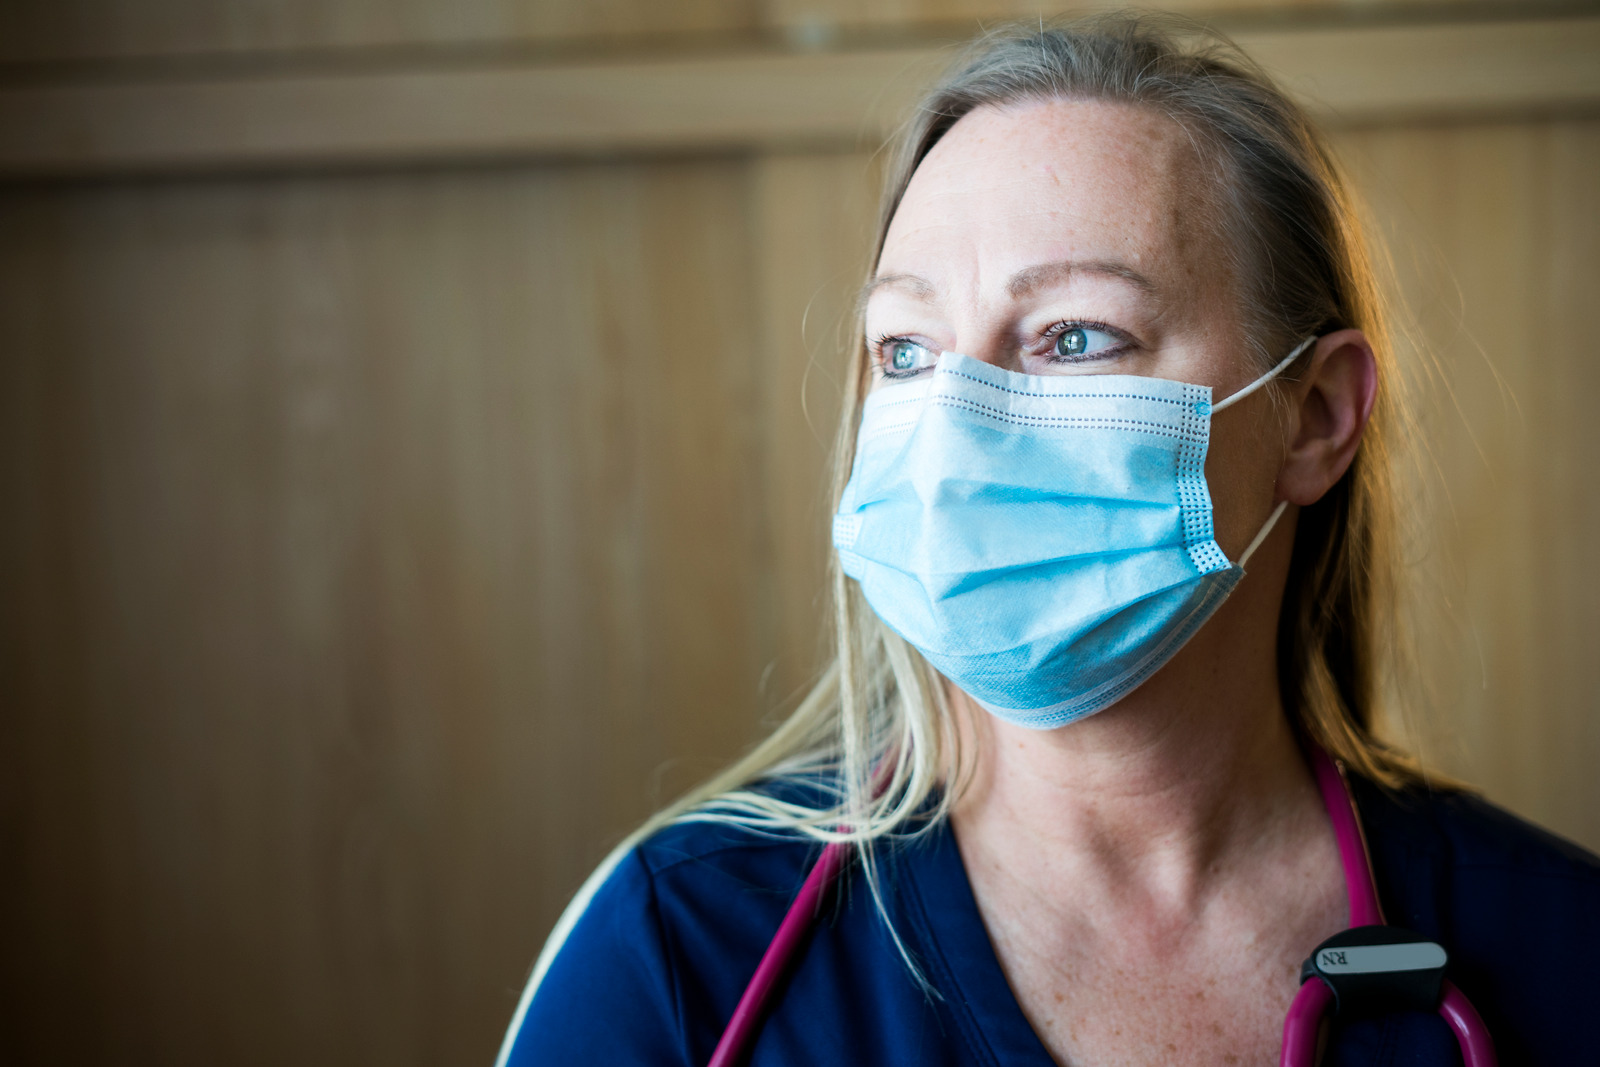 Nurse working during Covid-19